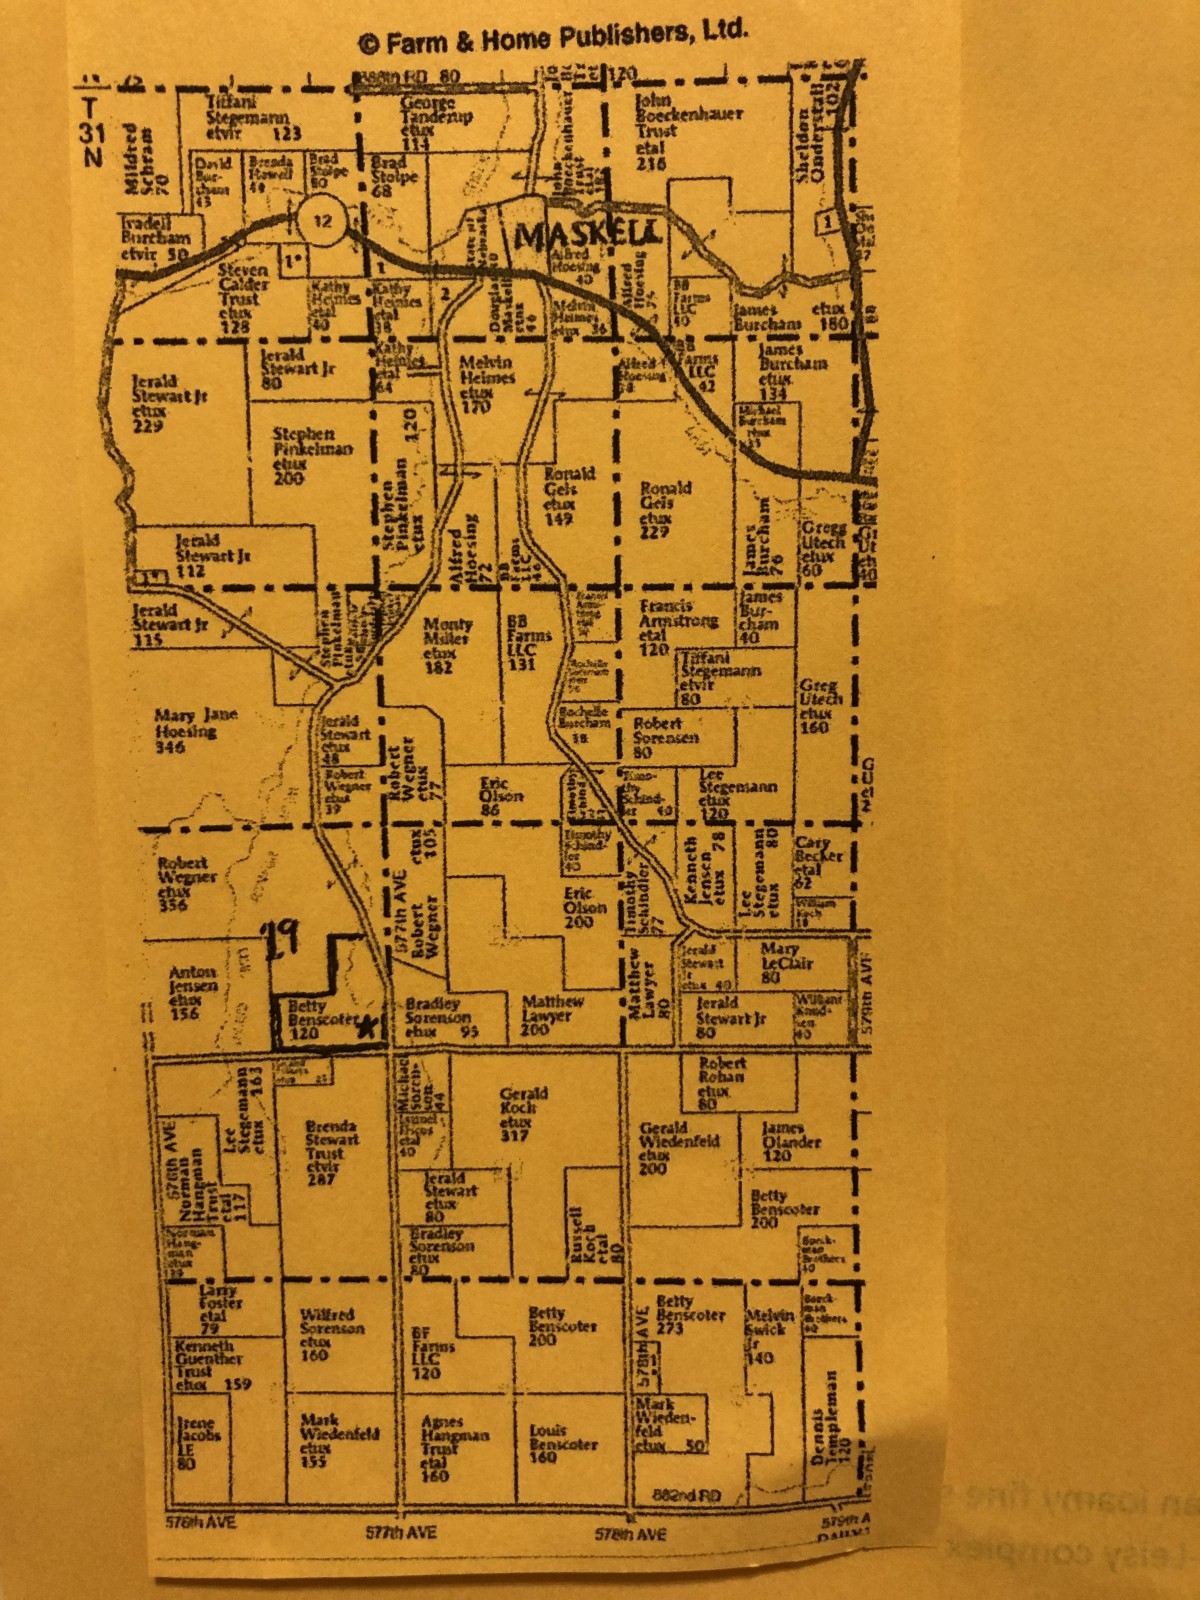 120 Acres +/- E 1/2  SE 1/4 &  SW 1/4 SE 1/4 Sec 19-31-4 Hooker Township, Dixon County, Nebraska Sealed BID